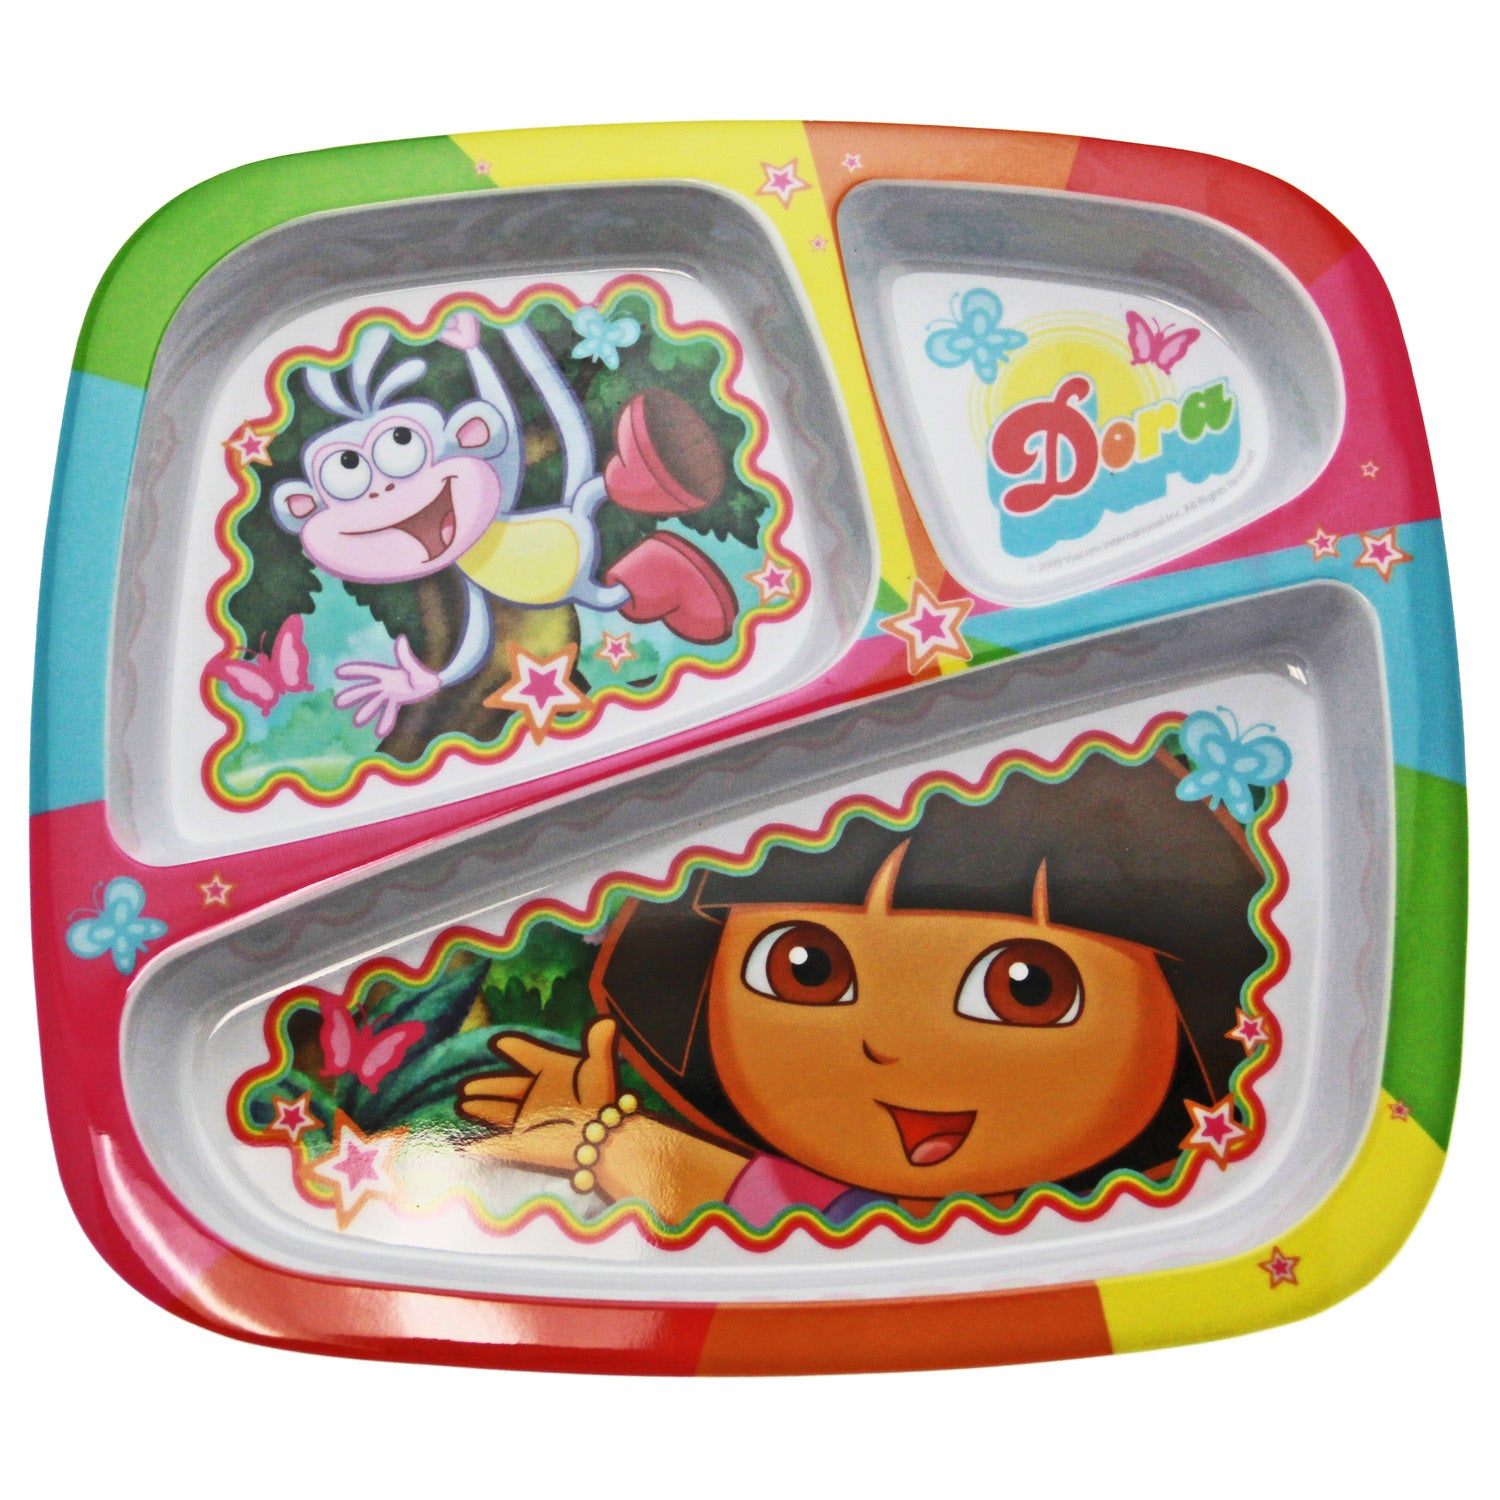 Dora the Explorer Dinnerware - 3-Section Tray